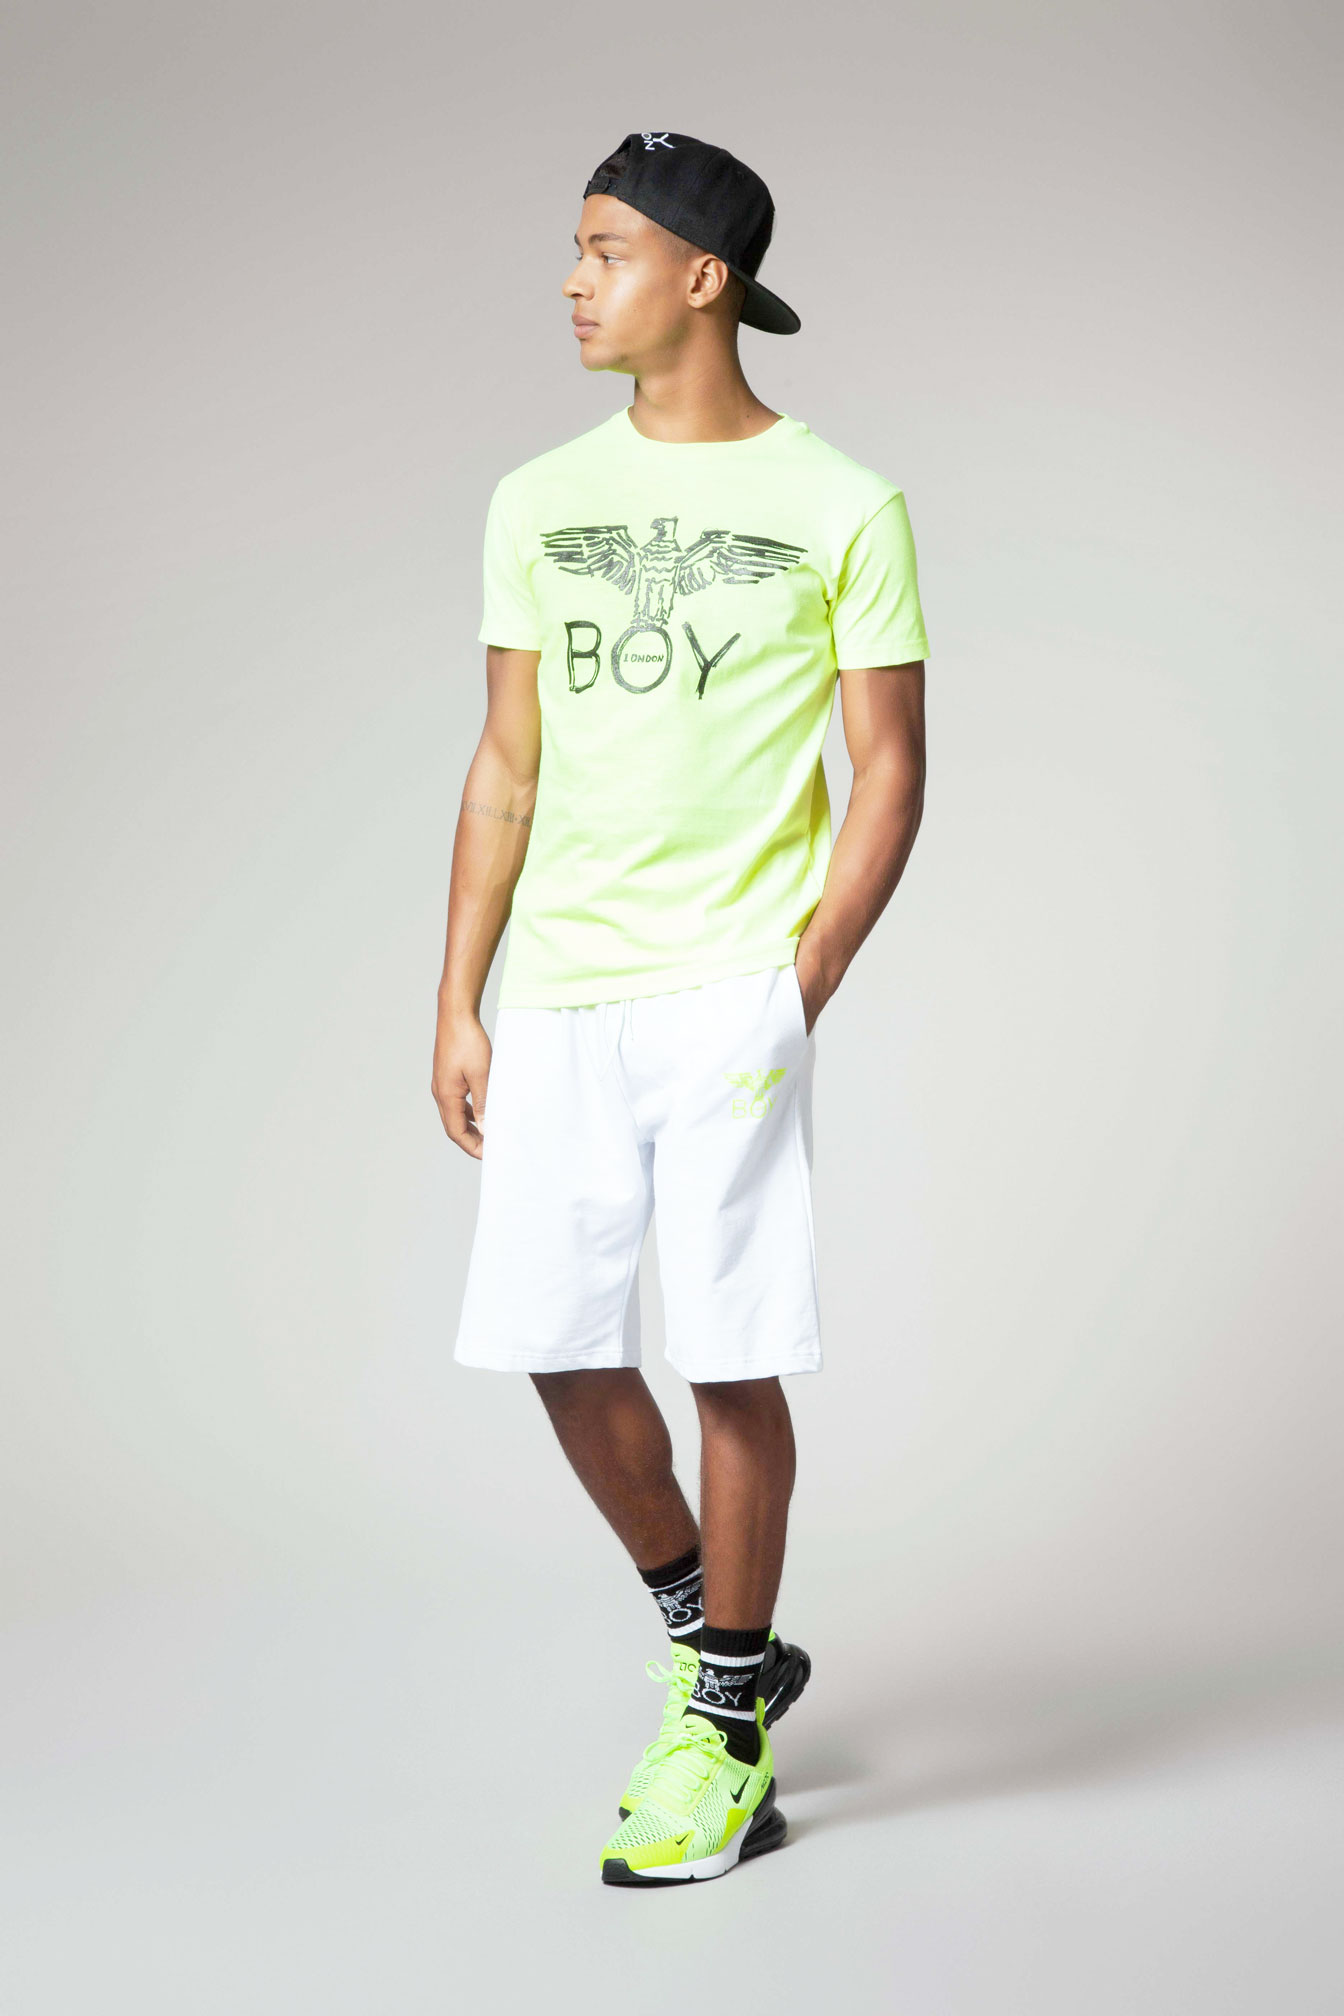 T-SHIRT - BLU6523 - BOY LONDON